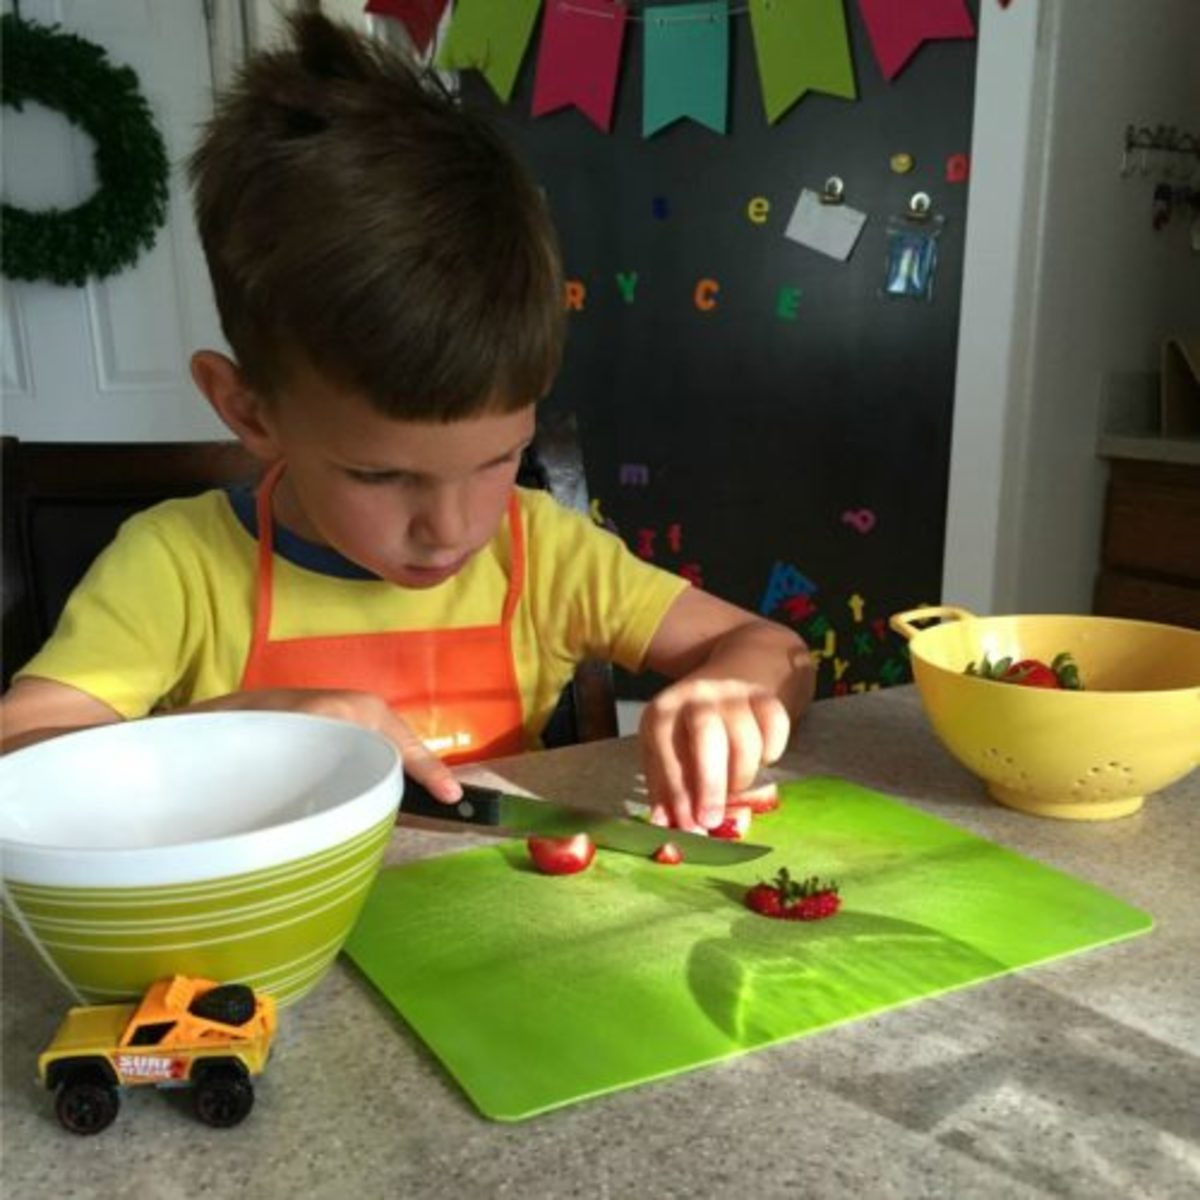 5 Reminders for Raising Helpful Kids in the Kitchen4